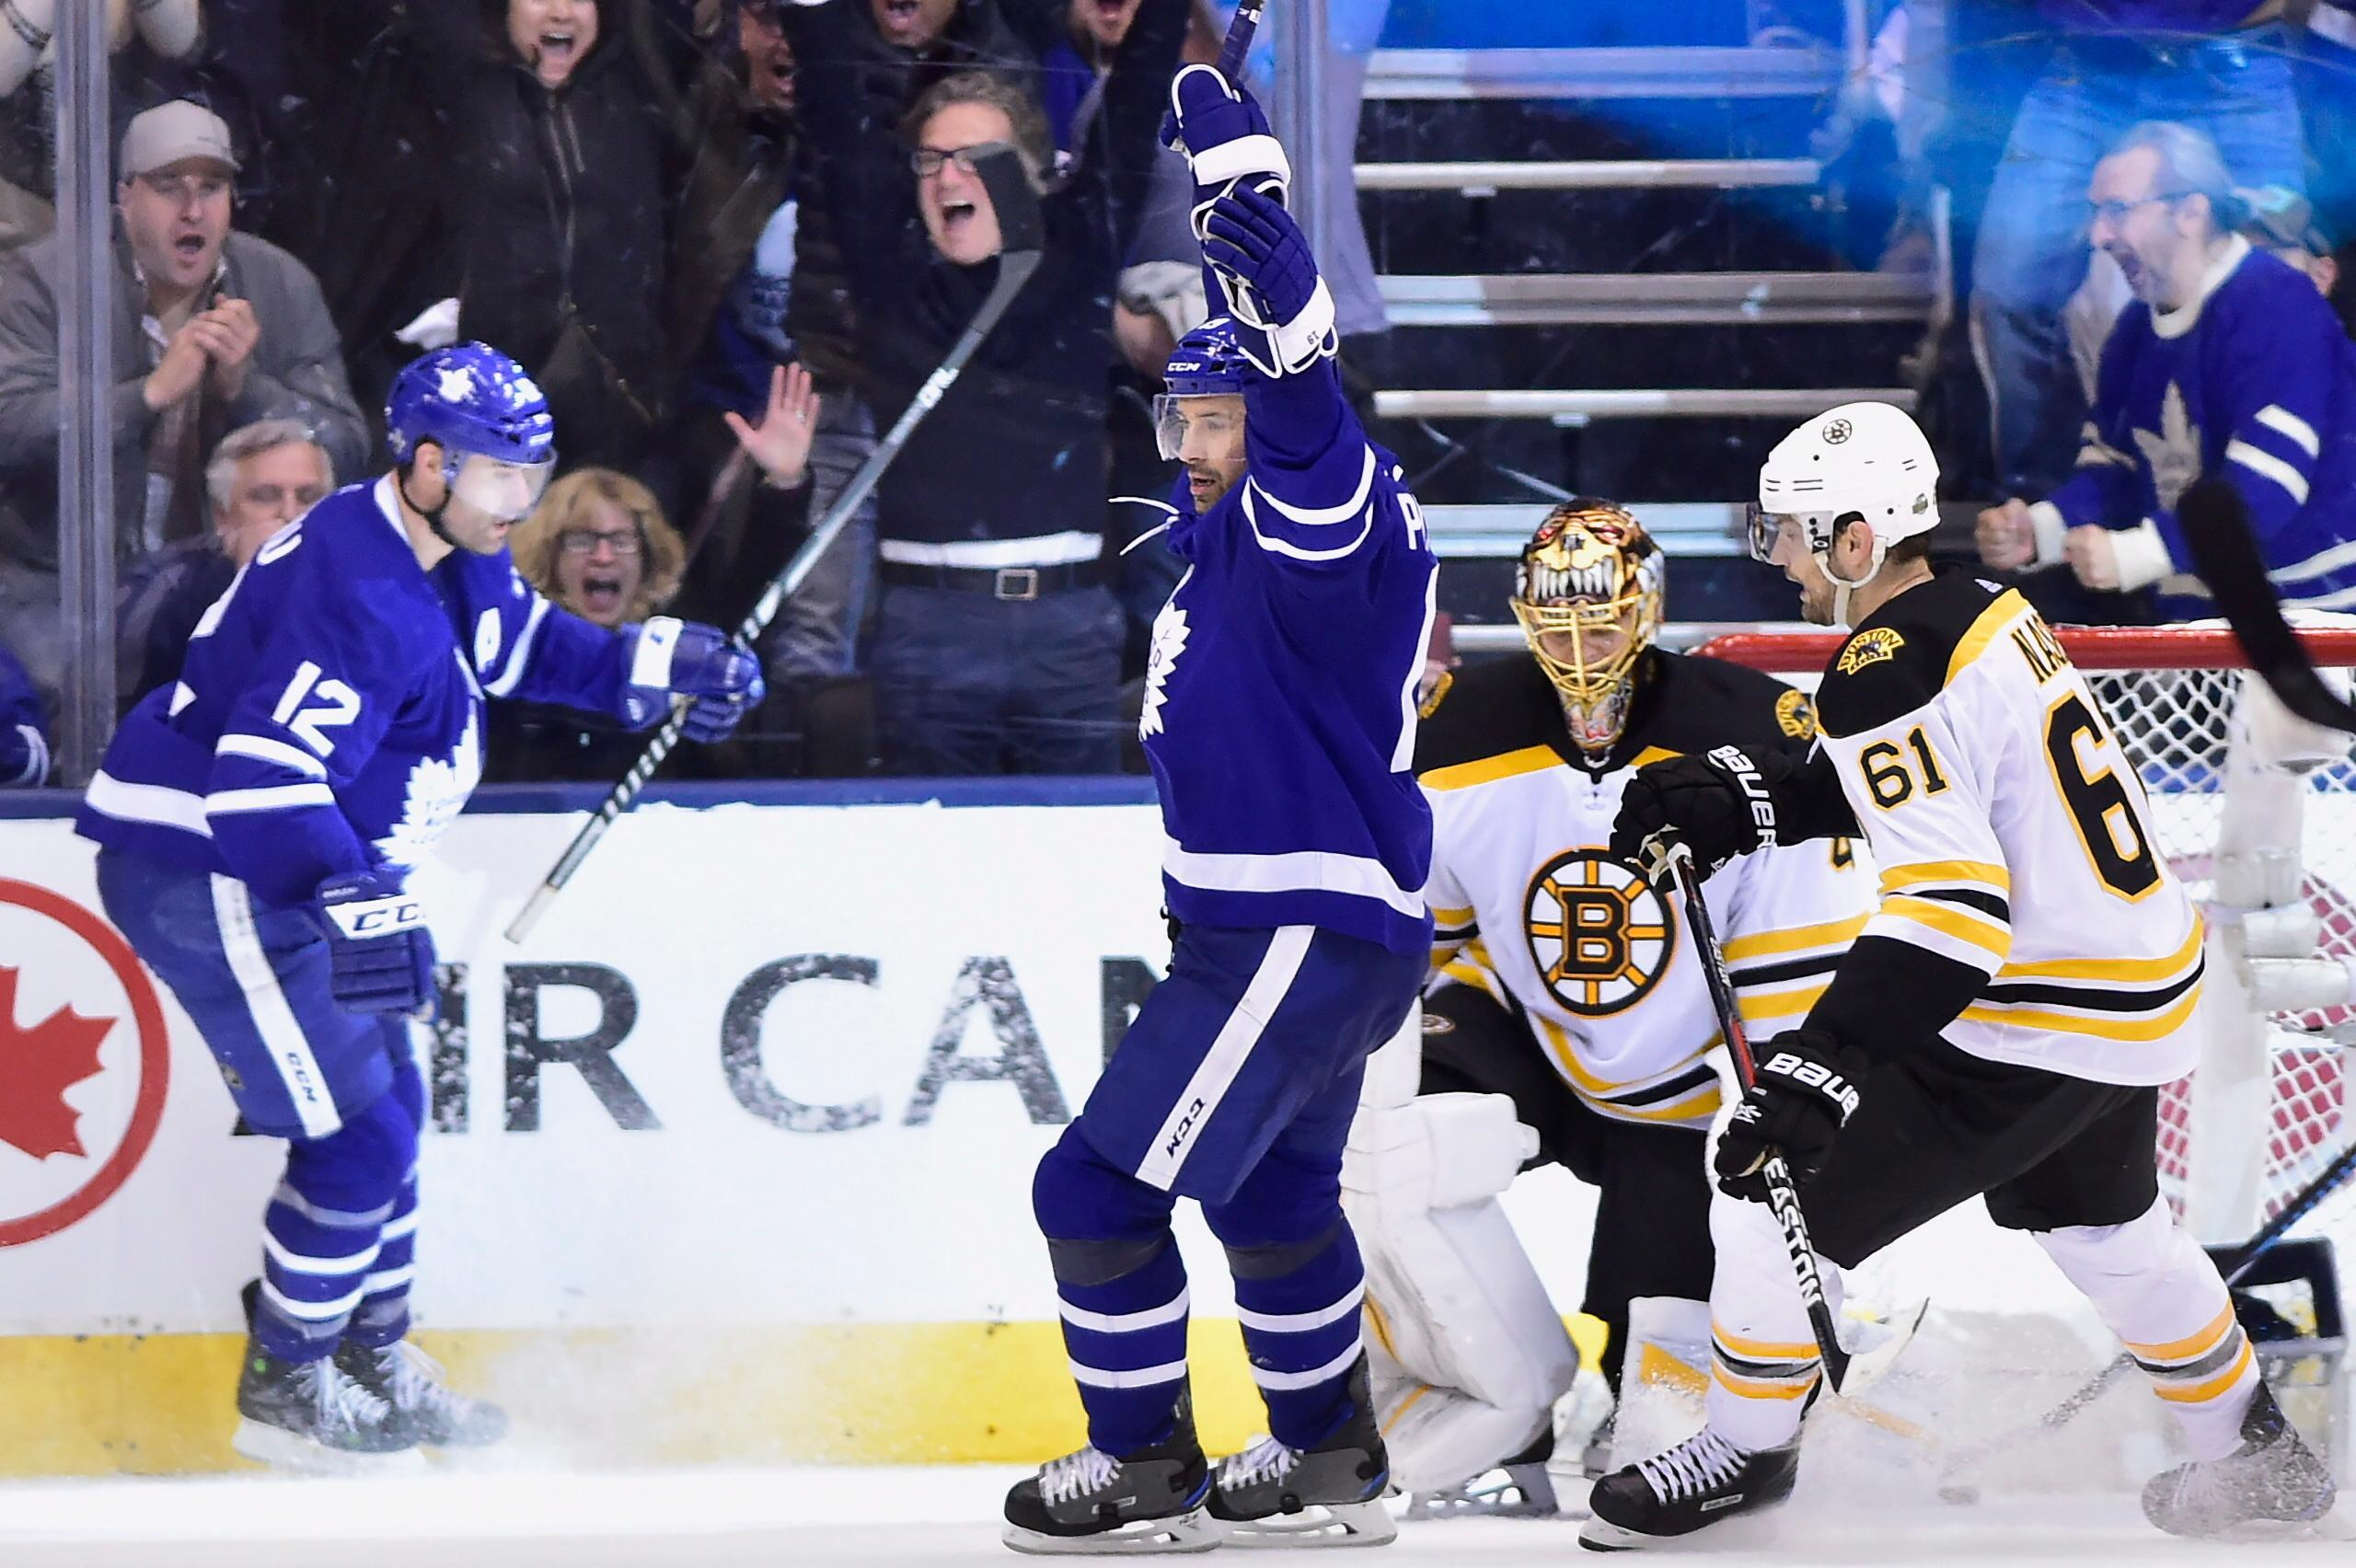 2780b1a1614 Toronto Maple Leafs centre Patrick Marleau, left, celebrates after scoring  on Boston Bruins goaltender